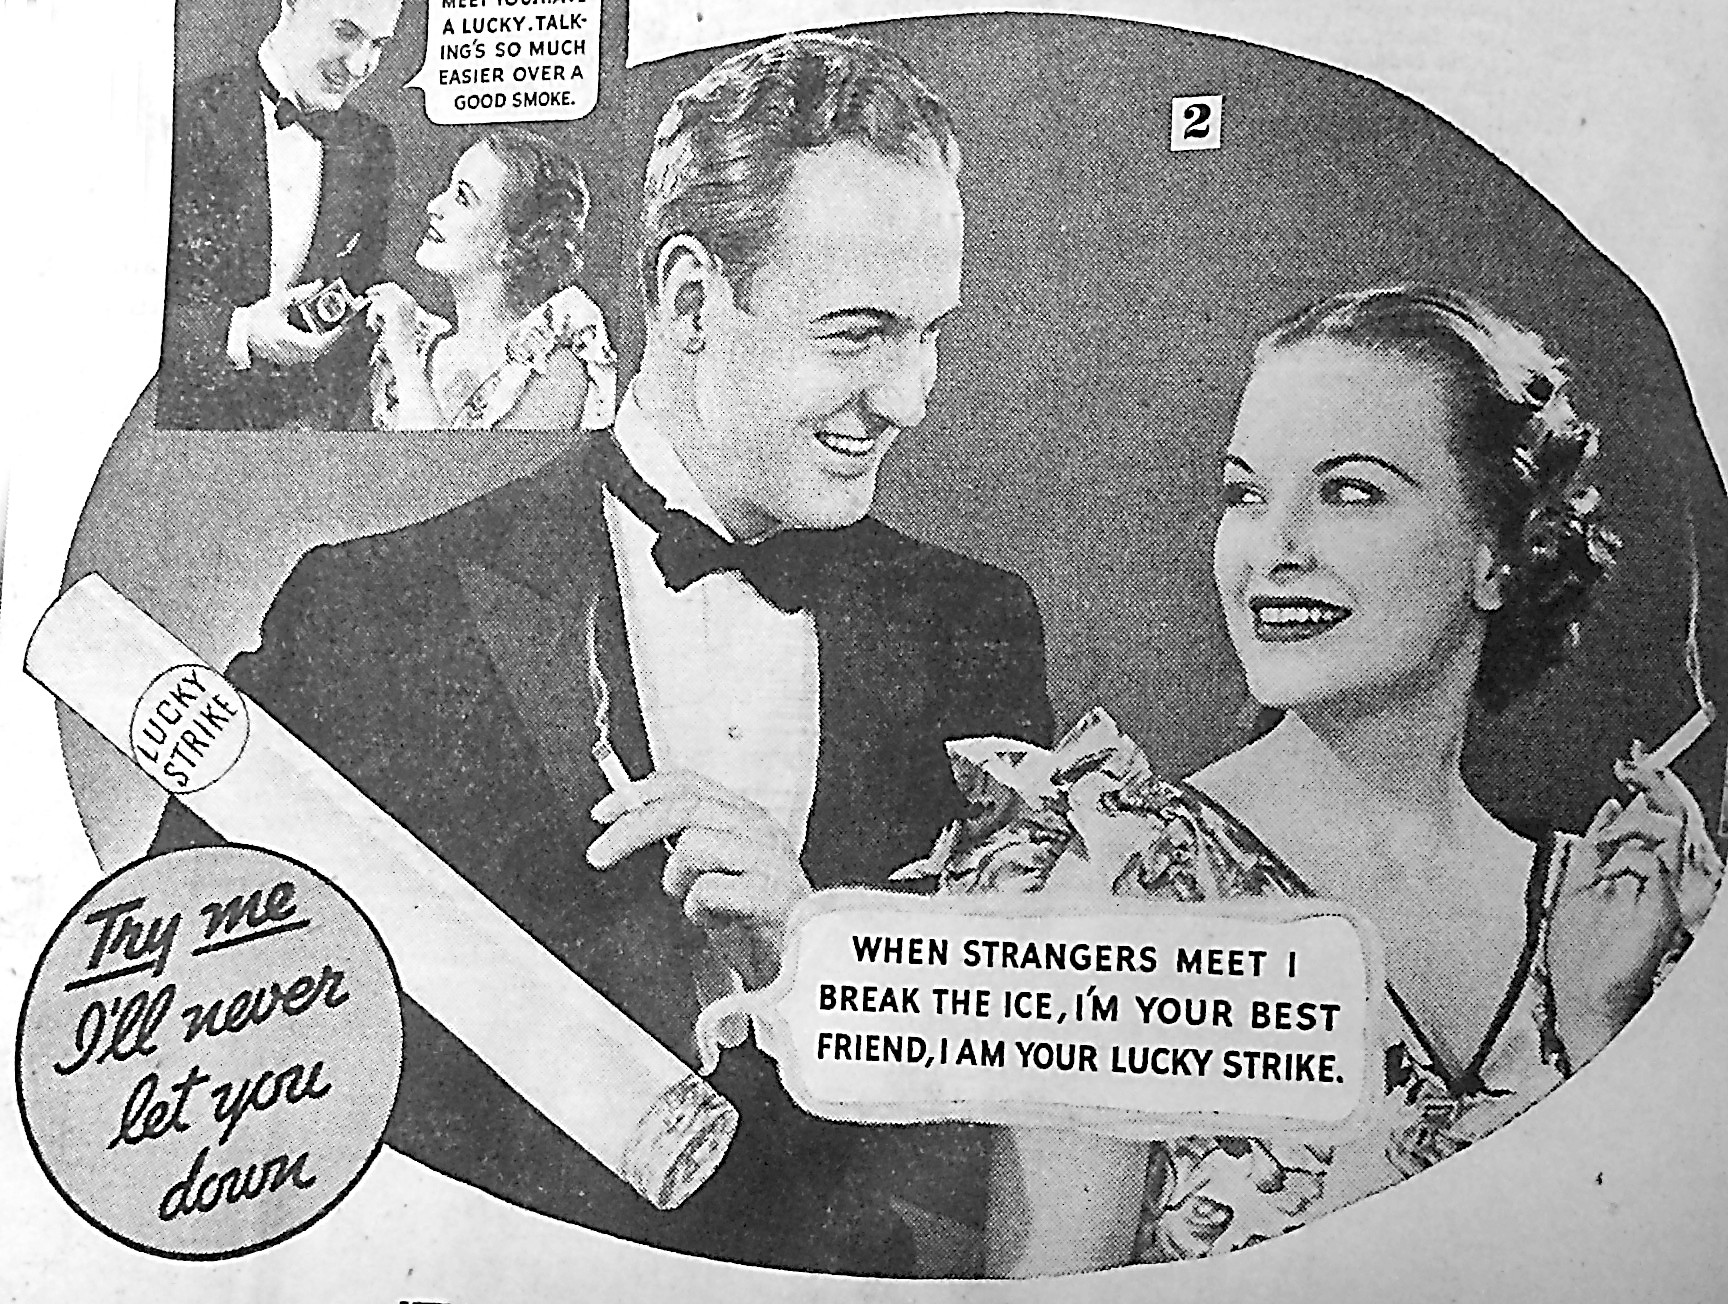 Almost all of what we would consider photographs in newspapers of the 1930s appeared in advertisements like this one for Lucky Strike cigarettes, of which a part is shown above.